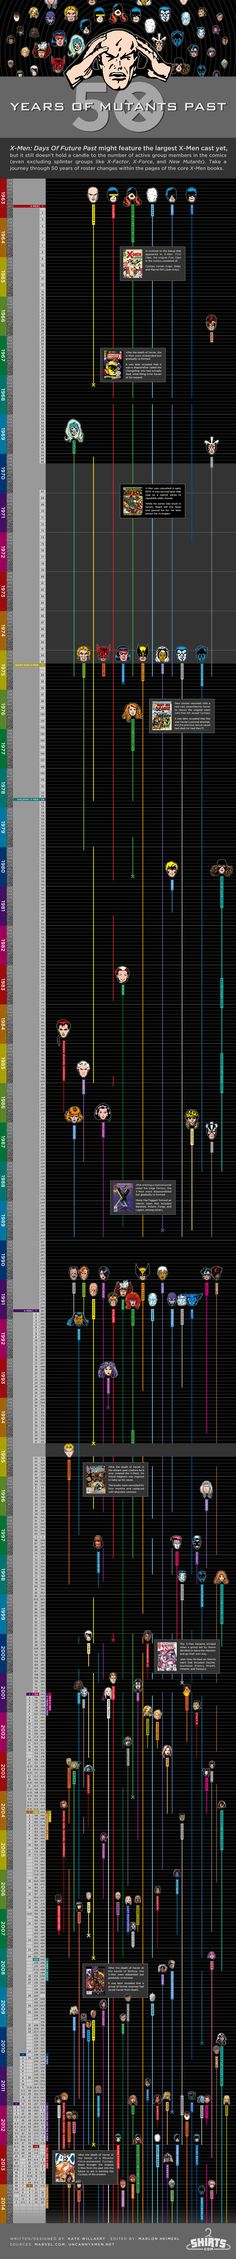 Infographic: 50 Years of Mutants Past #infographic